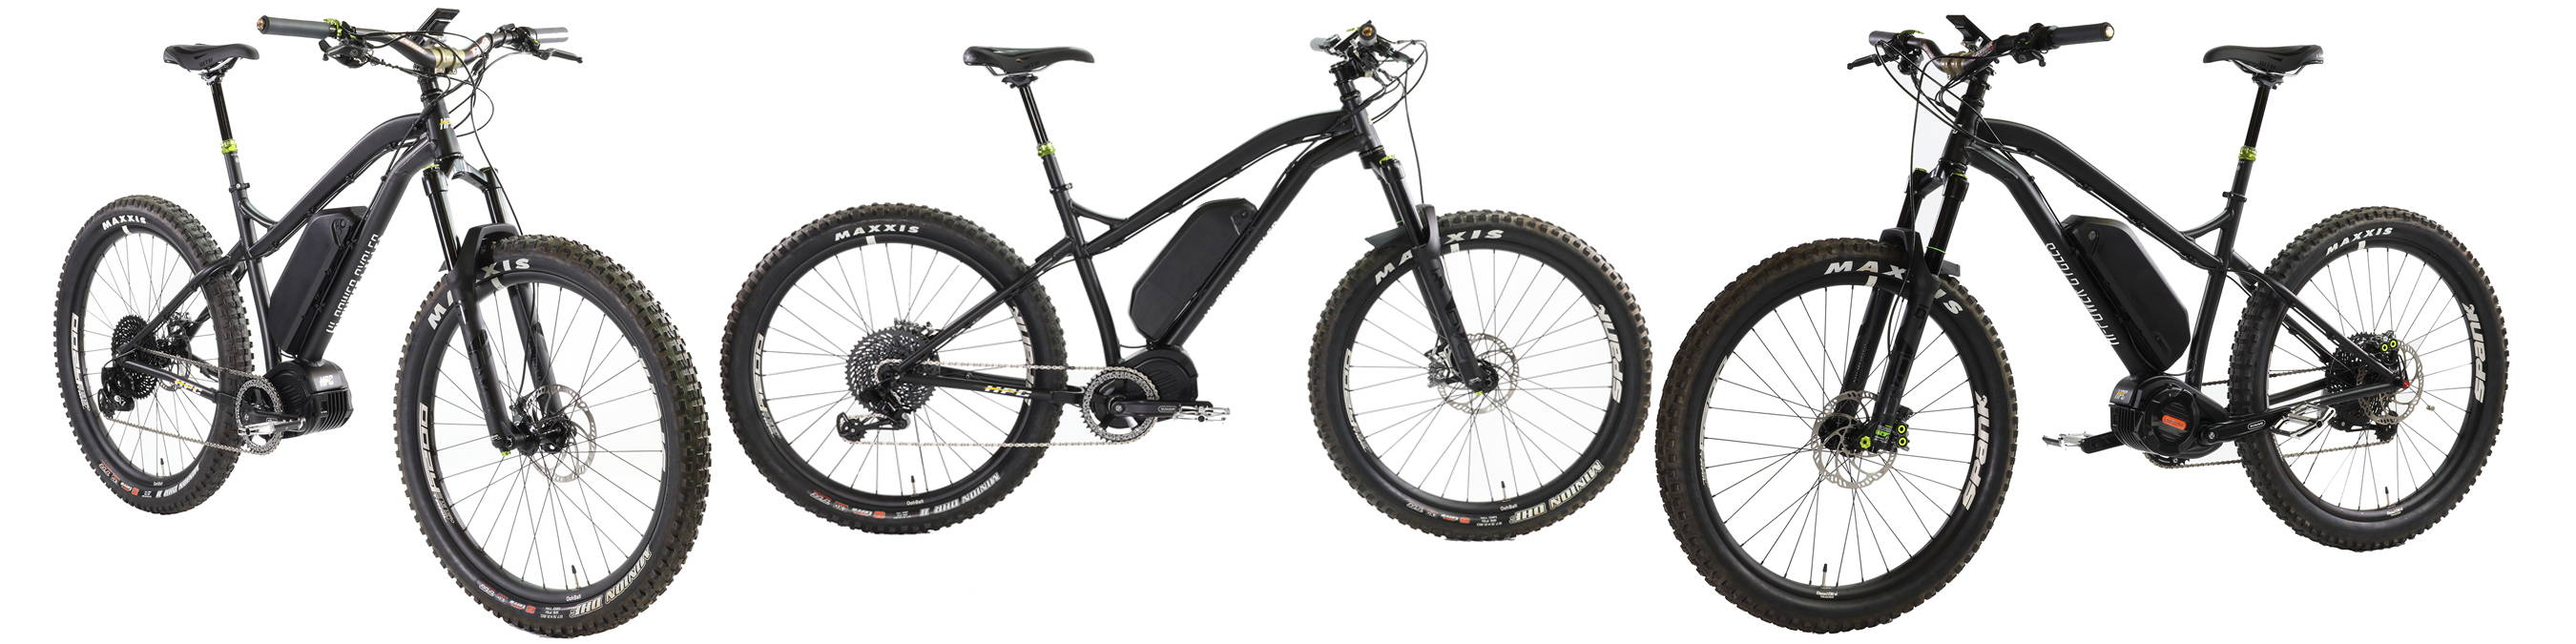 Scout Pro Factory Tuned 27 5+ Hardtail Electric Bike | Hi Power Cycles